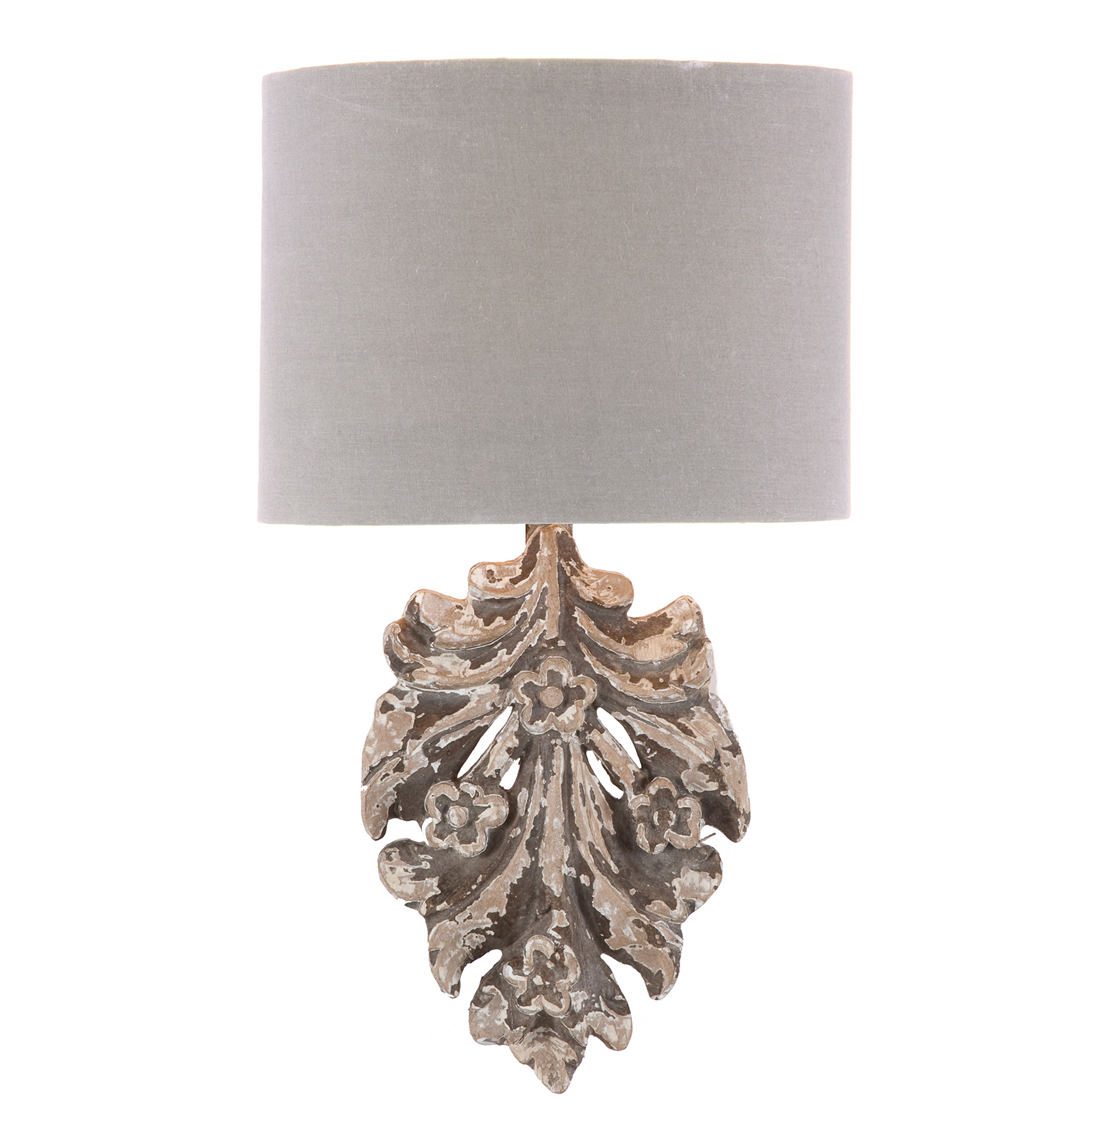 Top Designer Sconces - Eclectic Sconces | Kathy Kuo Home MQ58